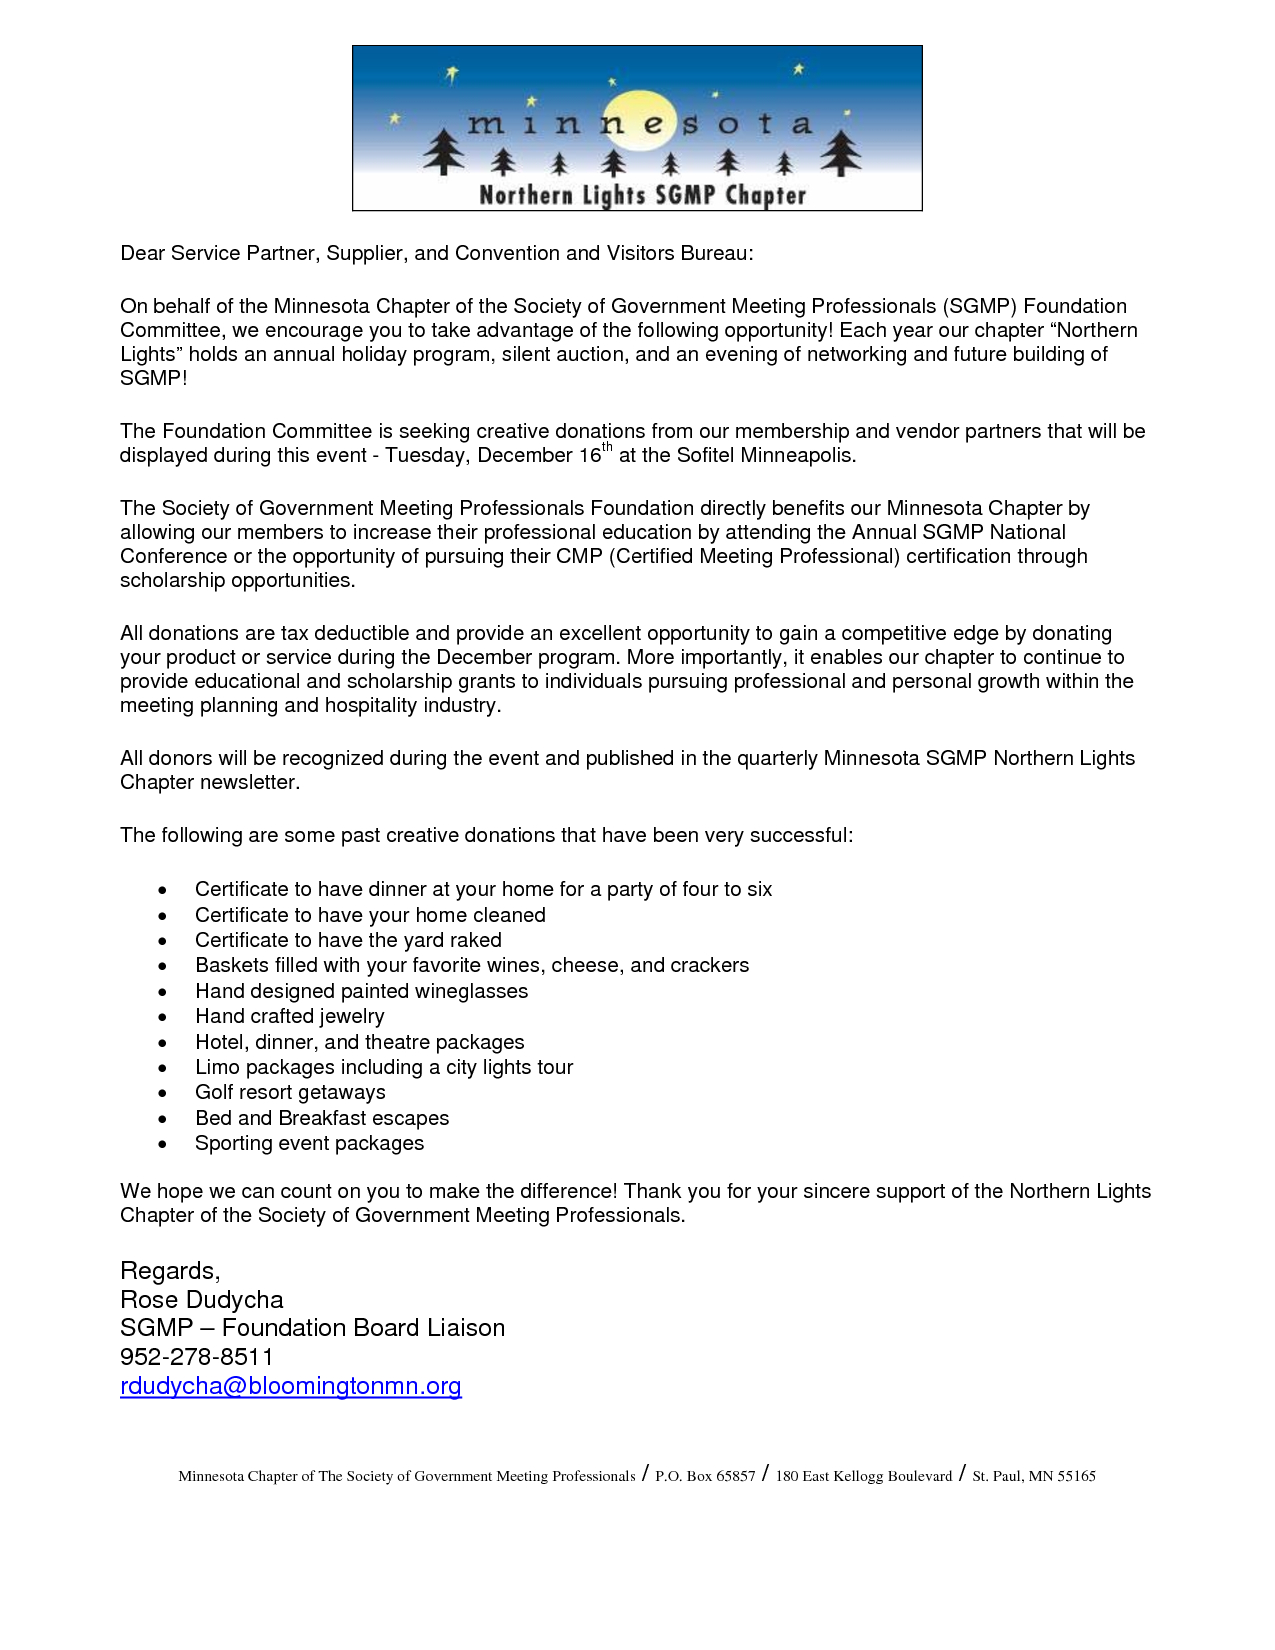 Personal Donation Letter Template - Letter Intent to Give Donation Highest Clarity